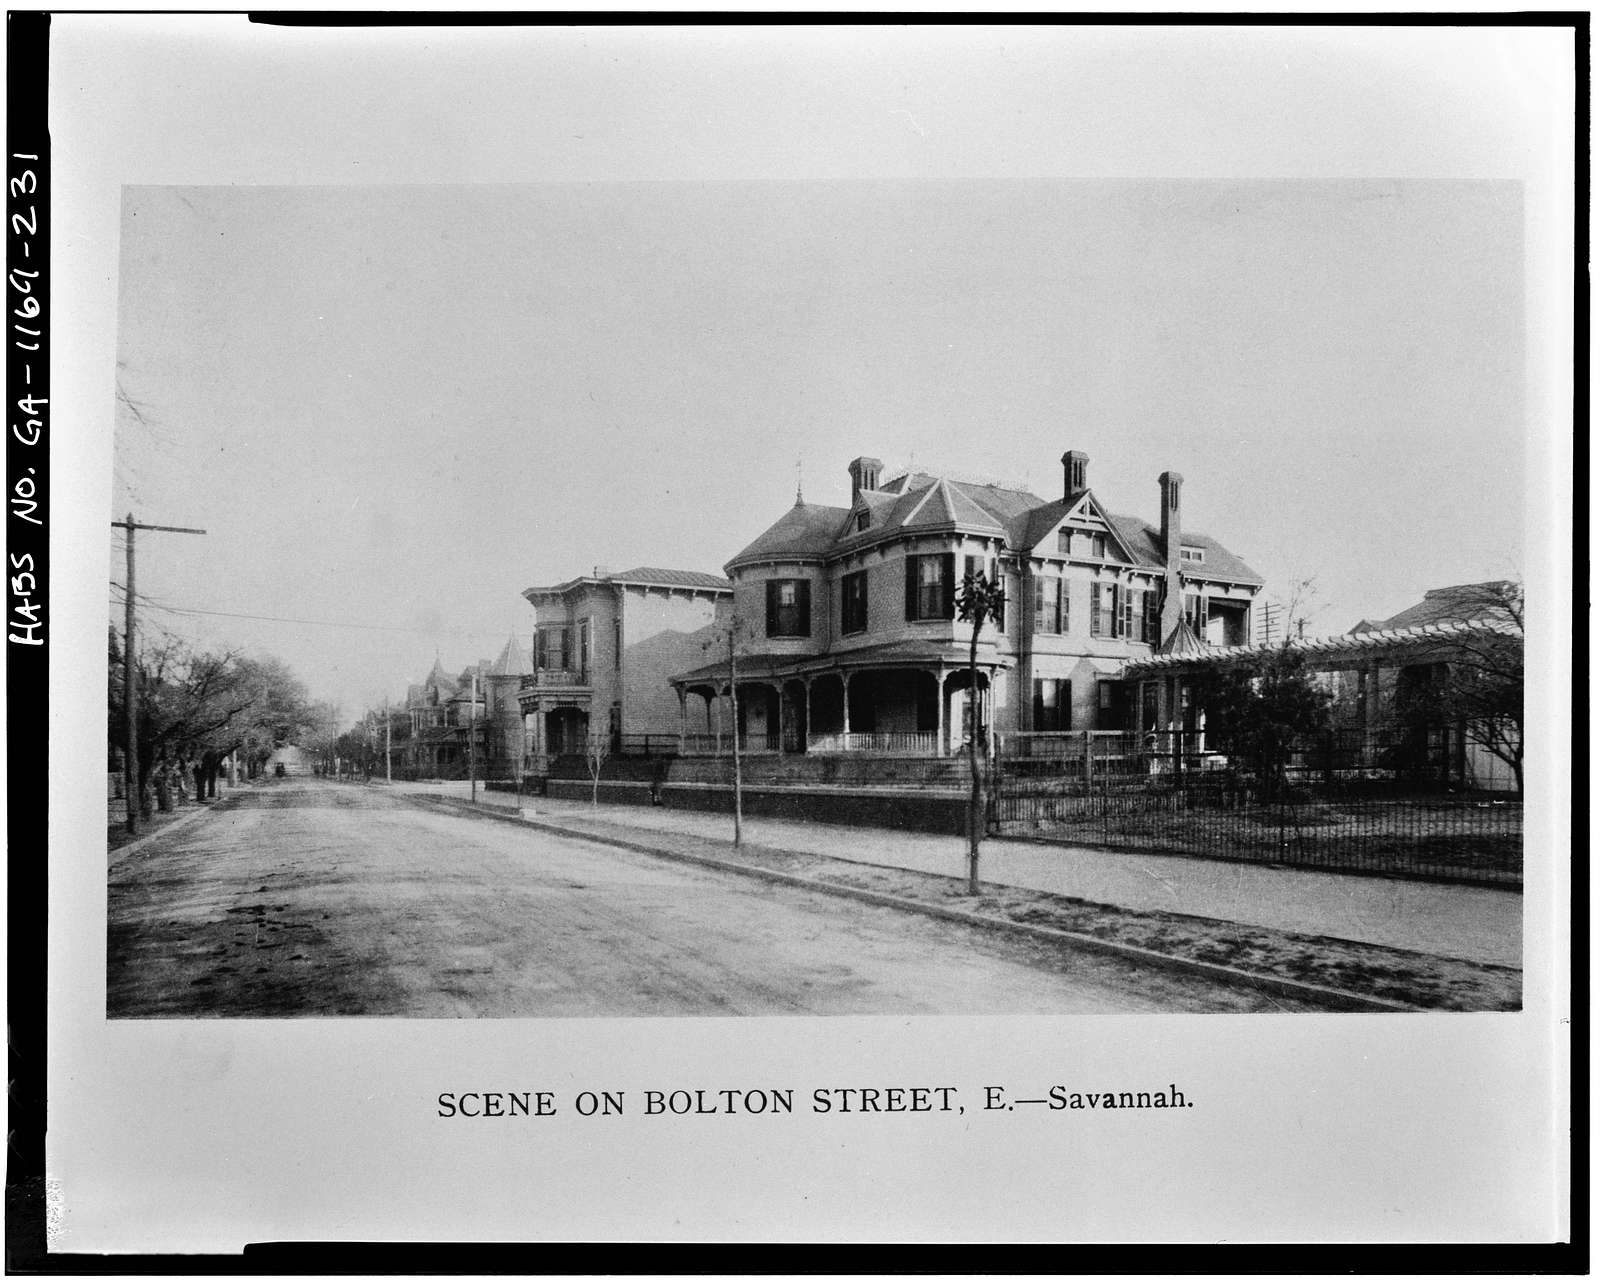 Savannah Victorian Historic District, Bounded by Gwinnett, East Broad, West Broad Street & Anderson Lane, Savannah, Chatham County, GA